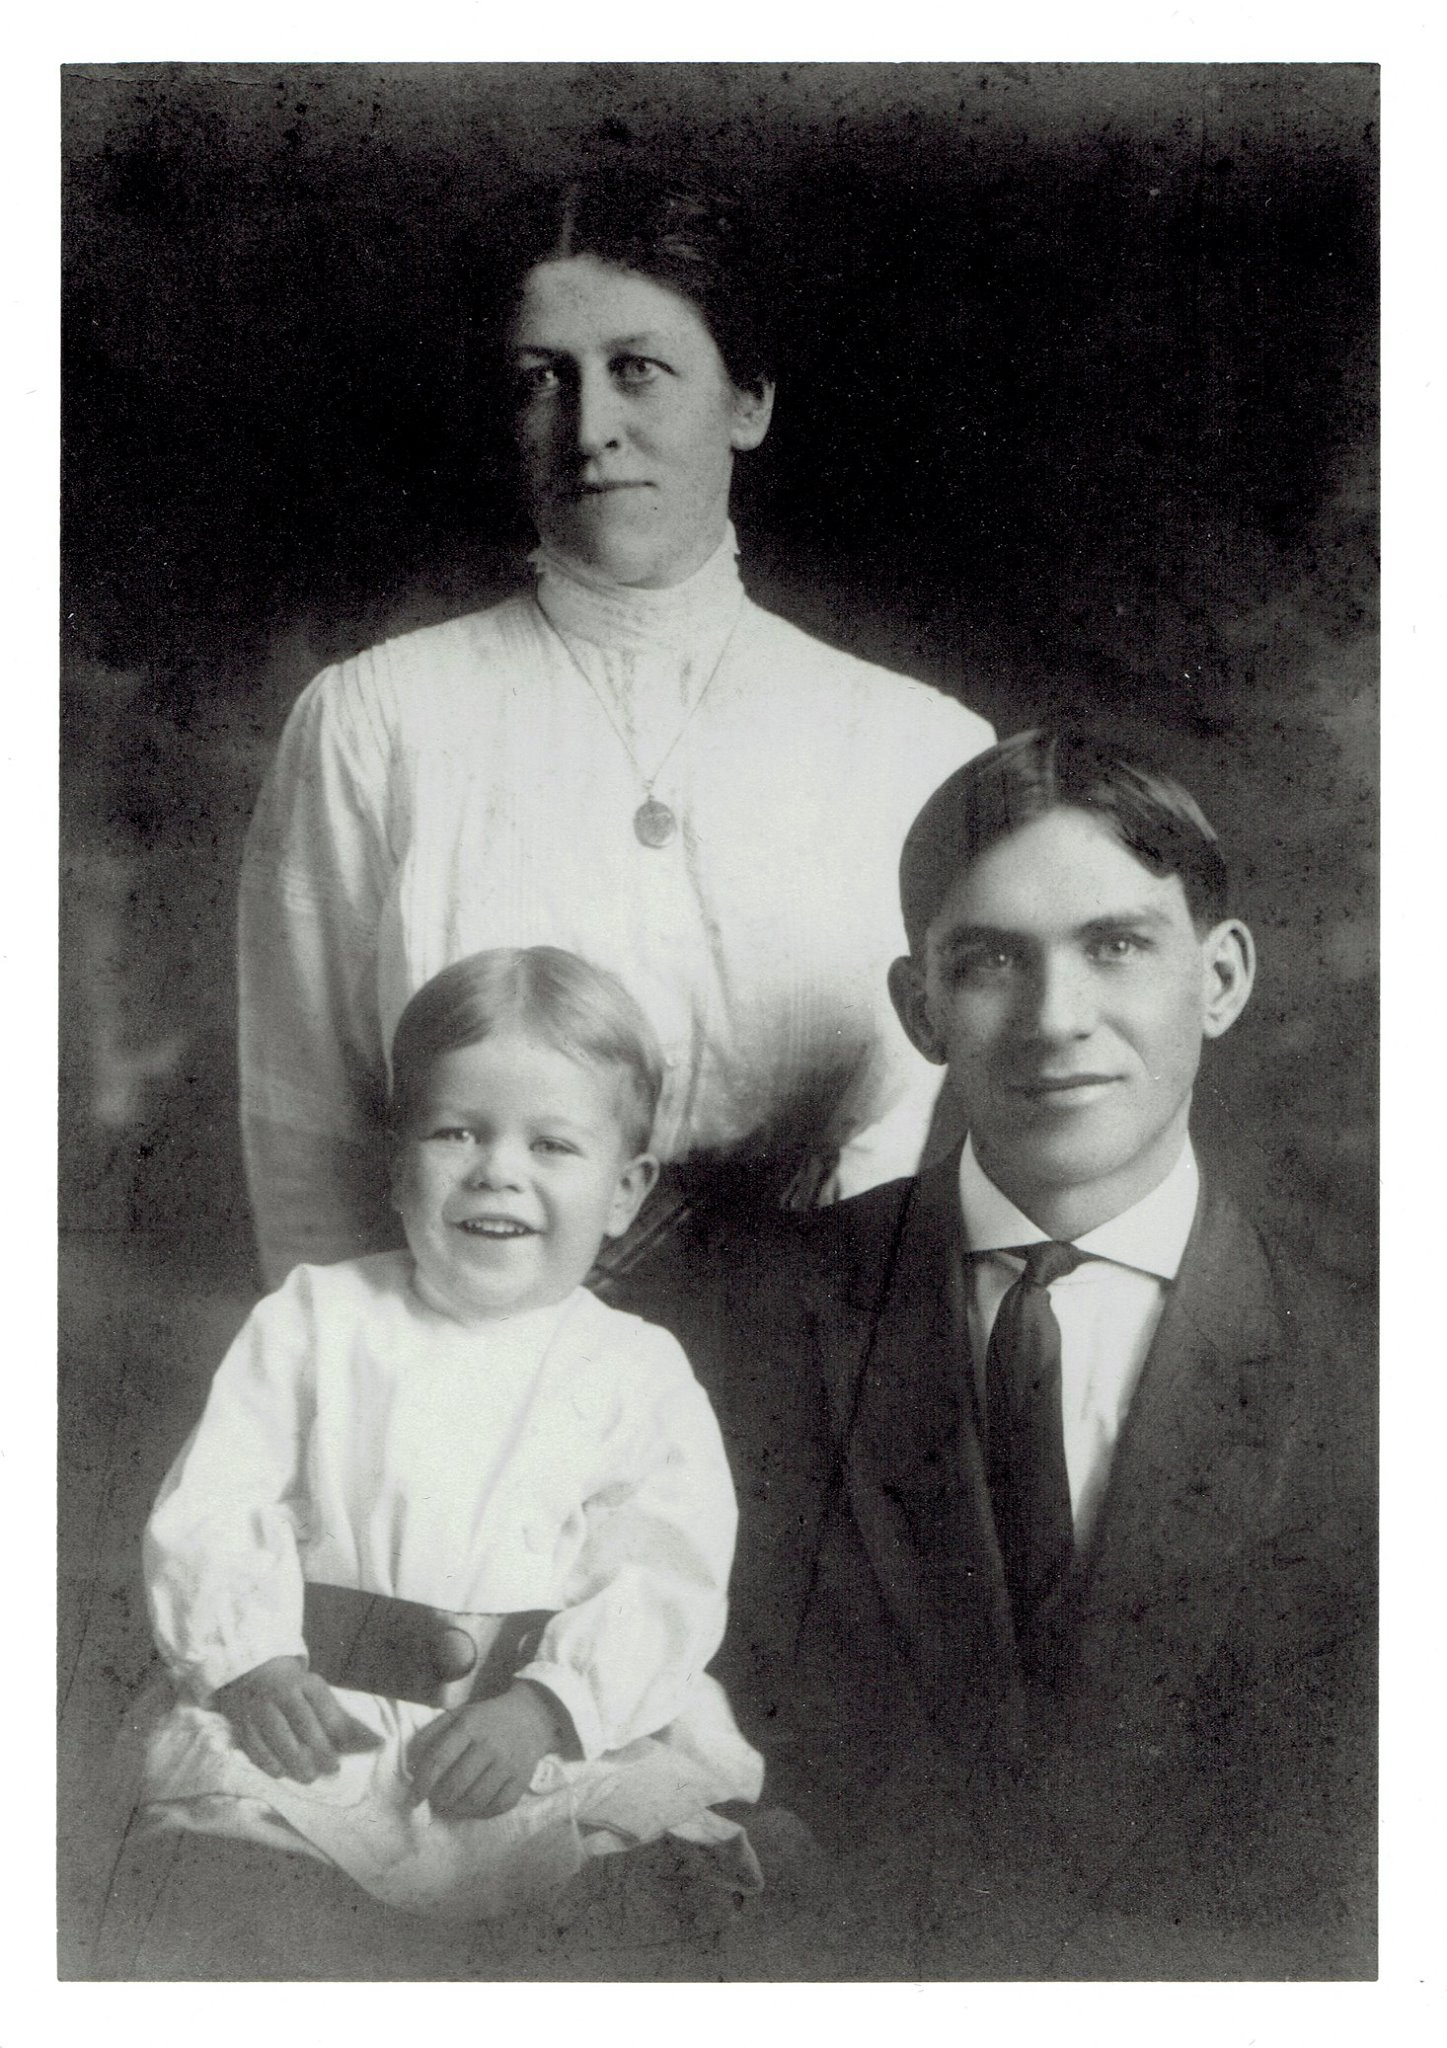 Max J. Palmer at age 2 with his parents (1914).